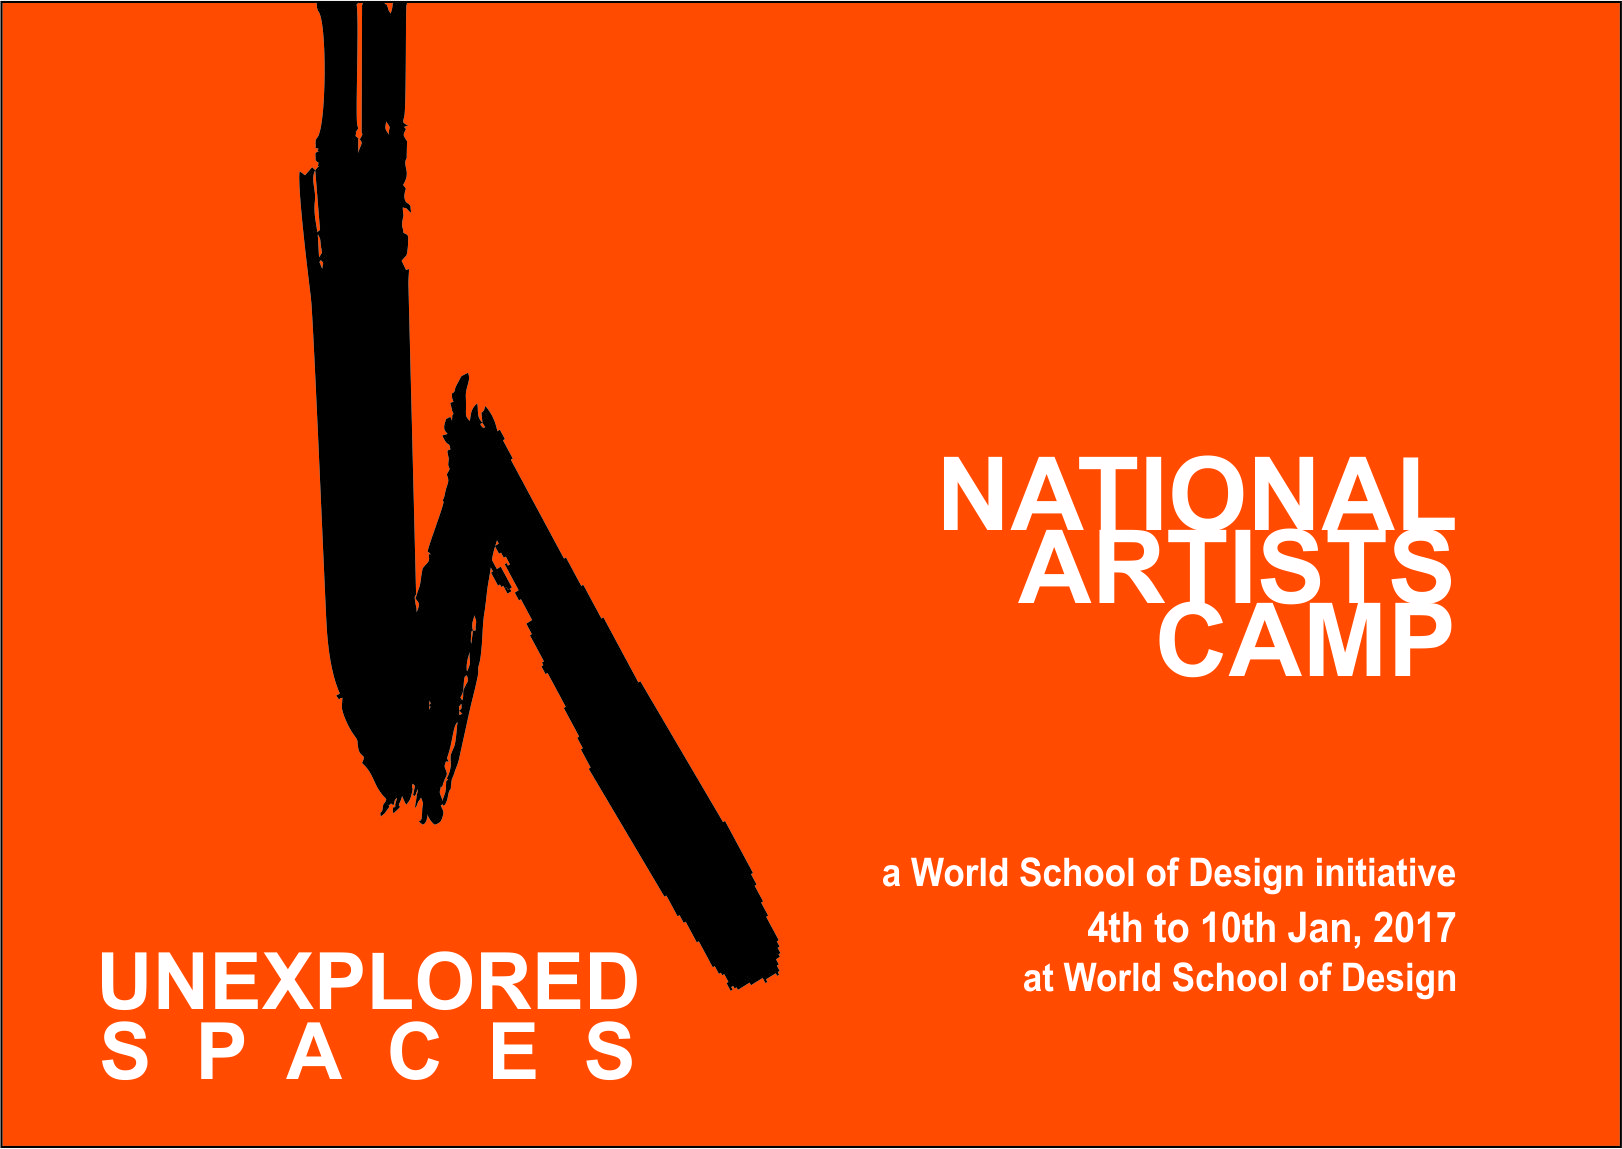 Unexplored Spaces A National Artists Camp At World School Of Design Fashion Designing Course Design World University